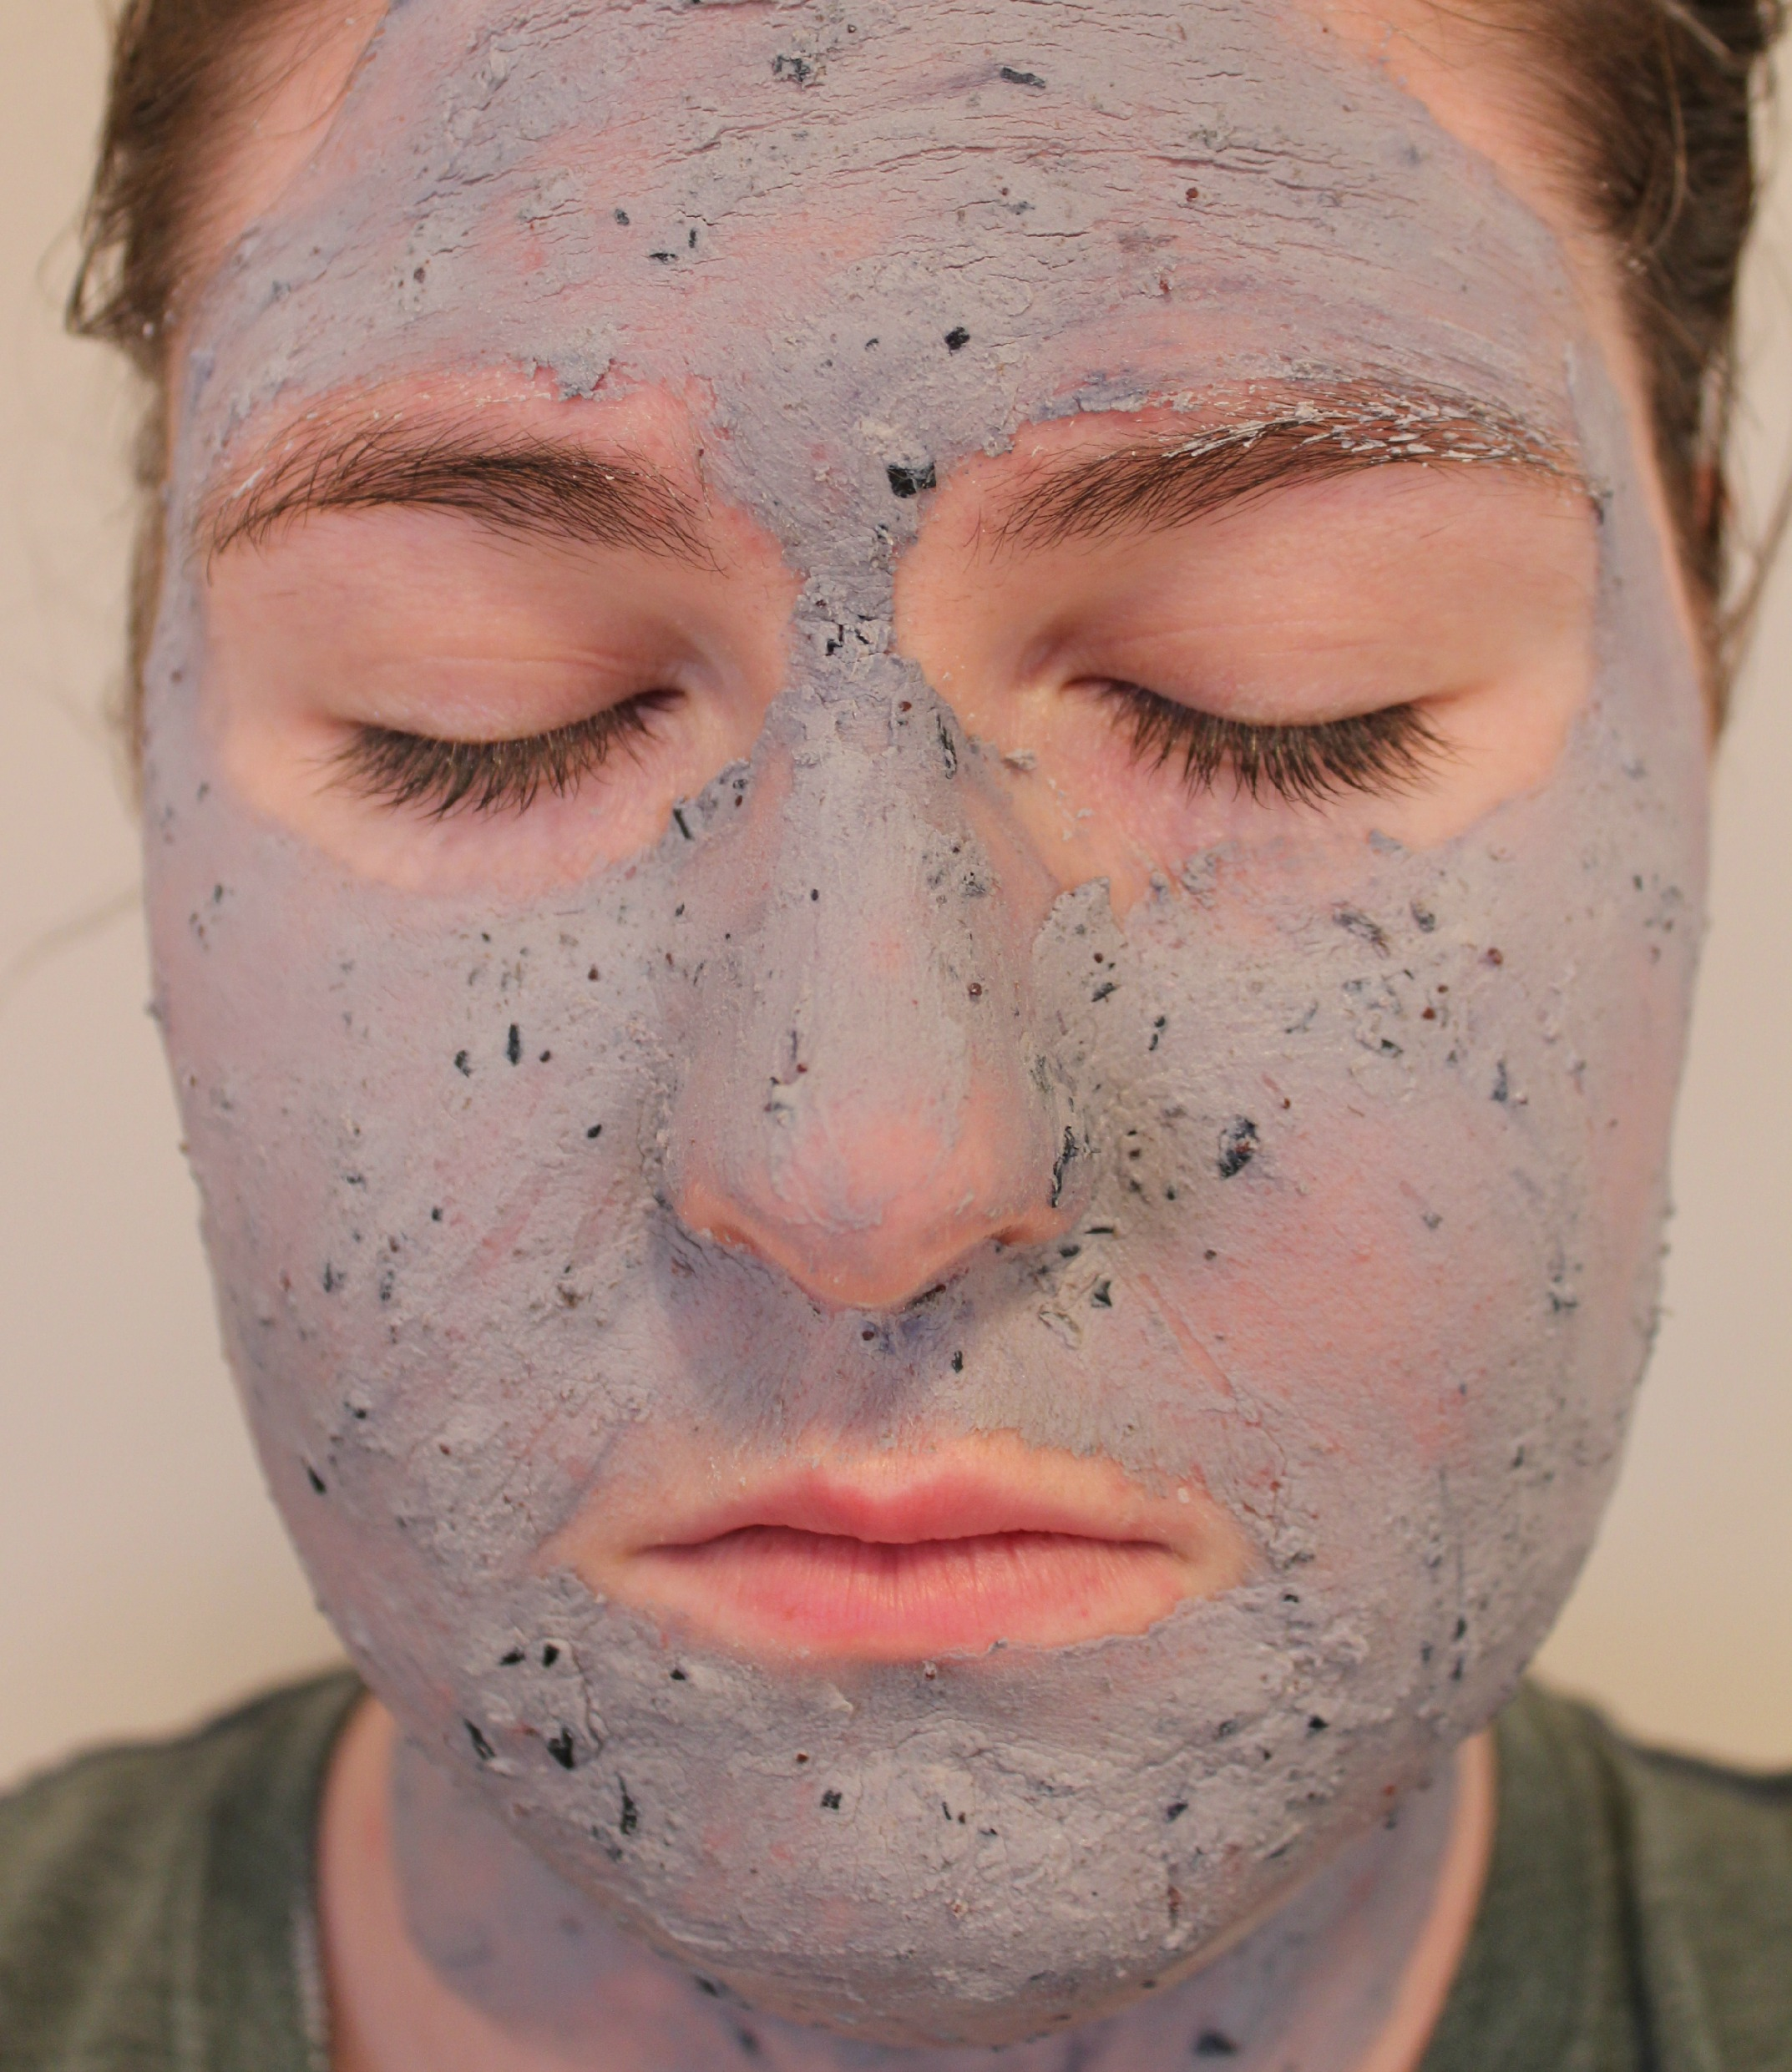 Lush Catastrophe Cosmetic Fresh Face Mask Review | EmmaLouisa.com